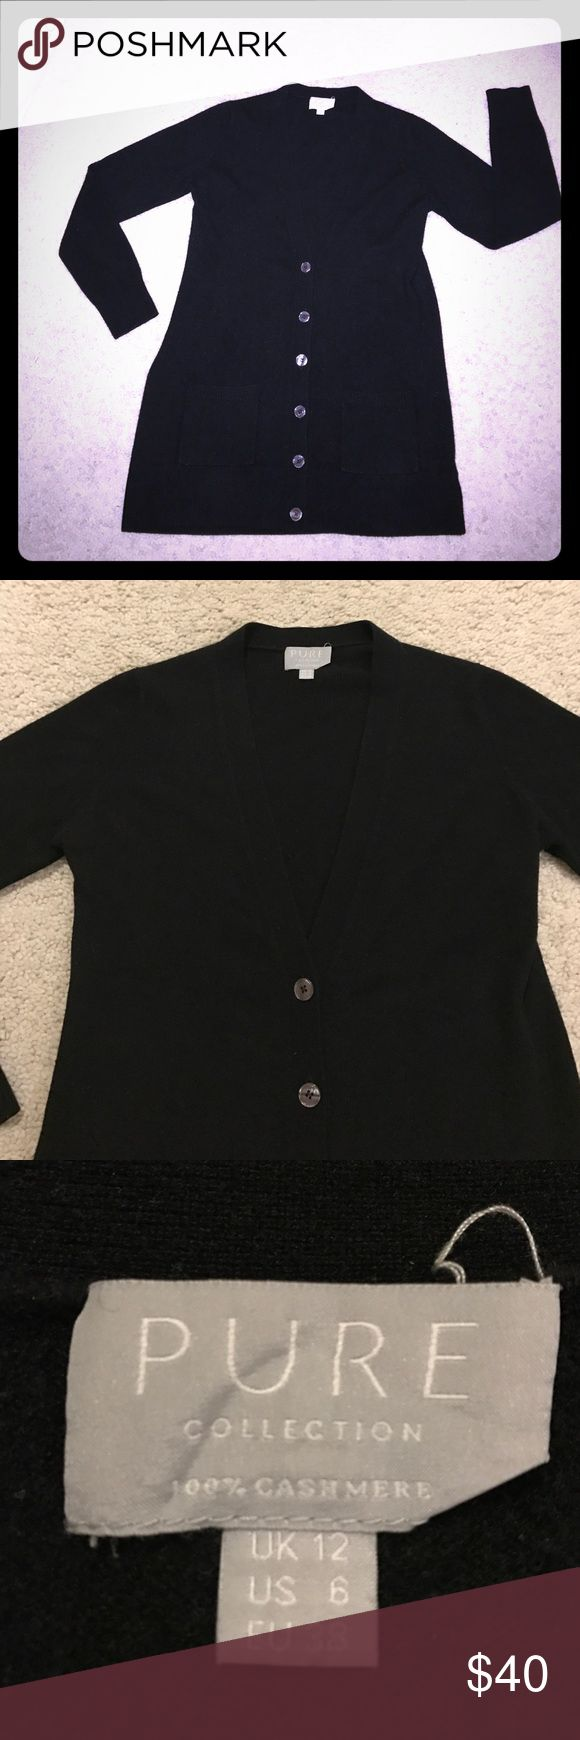 Pure Cashmere long cardigan sweater US 6 UK 12 This is a long black cashmere cardigan sweater shirt top by Pure Cashmere in US size 6, UK size 12, and Euro size 38. It has two front pockets. It is in excellent used condition! Thanks for looking!!!! Anthropologie Sweaters Cardigans